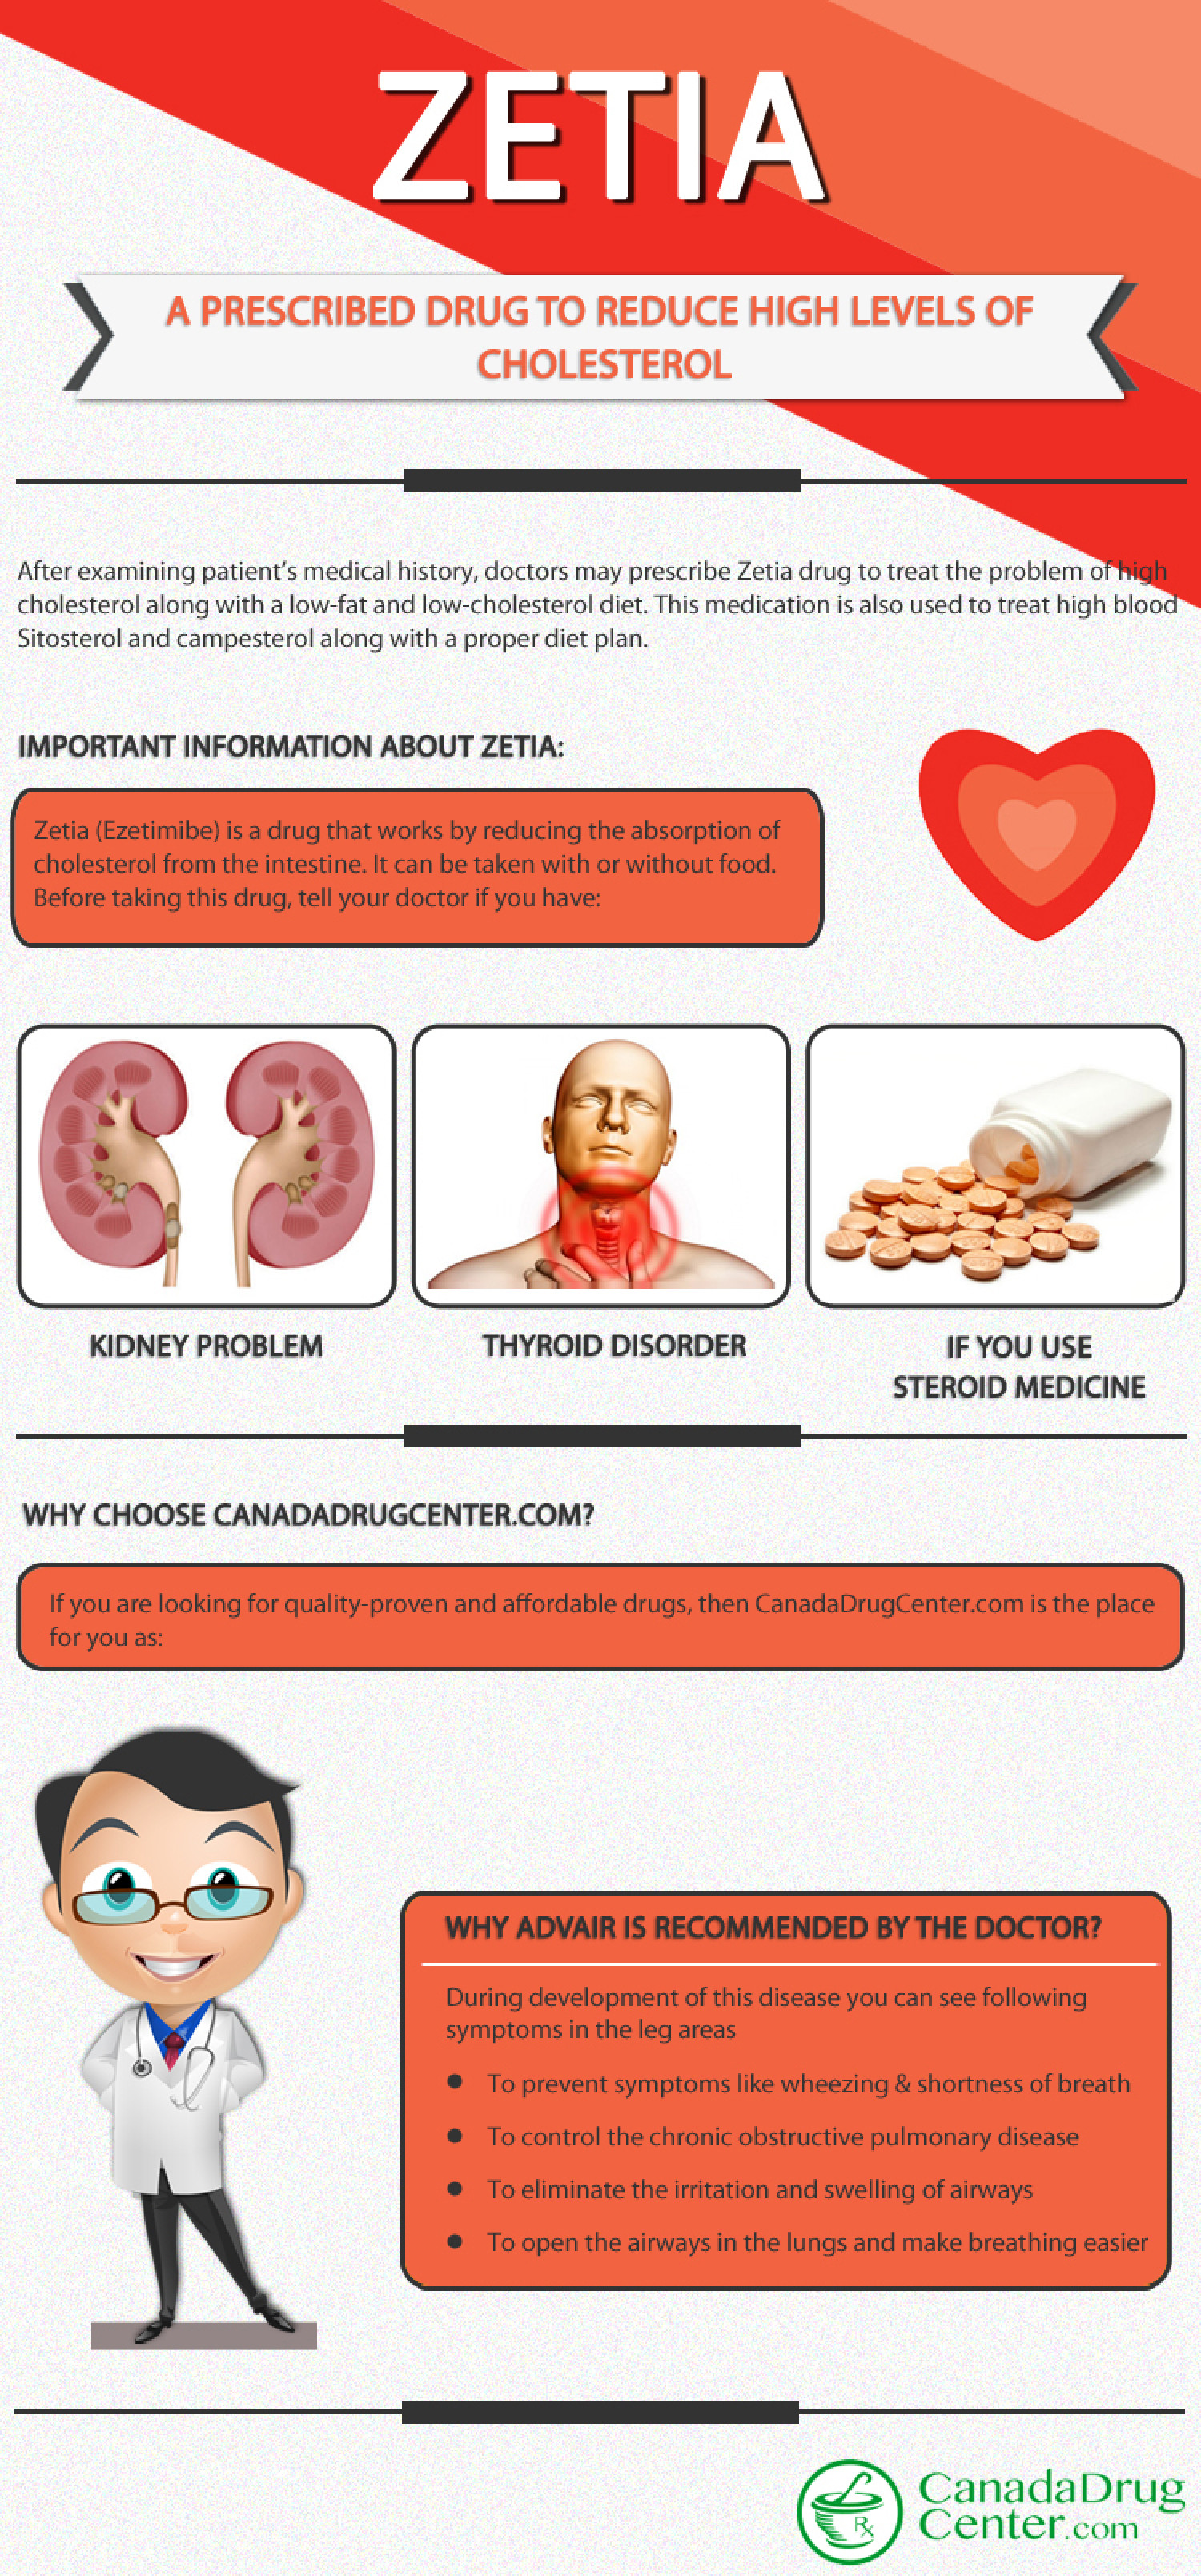 Zetia: A Prescribed Drug to Reduce High Levels of Cholesterol Infographic